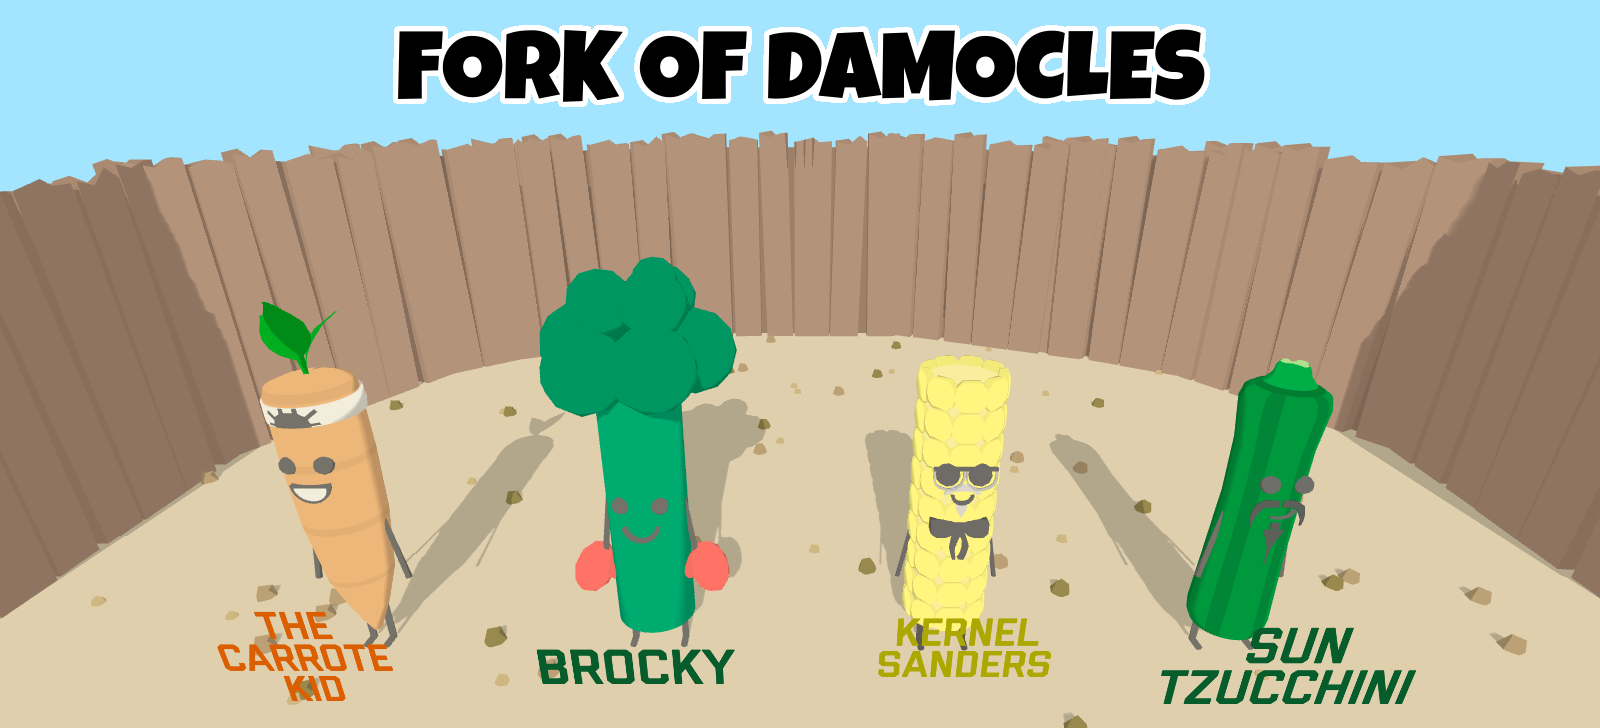 Fork of Damocles